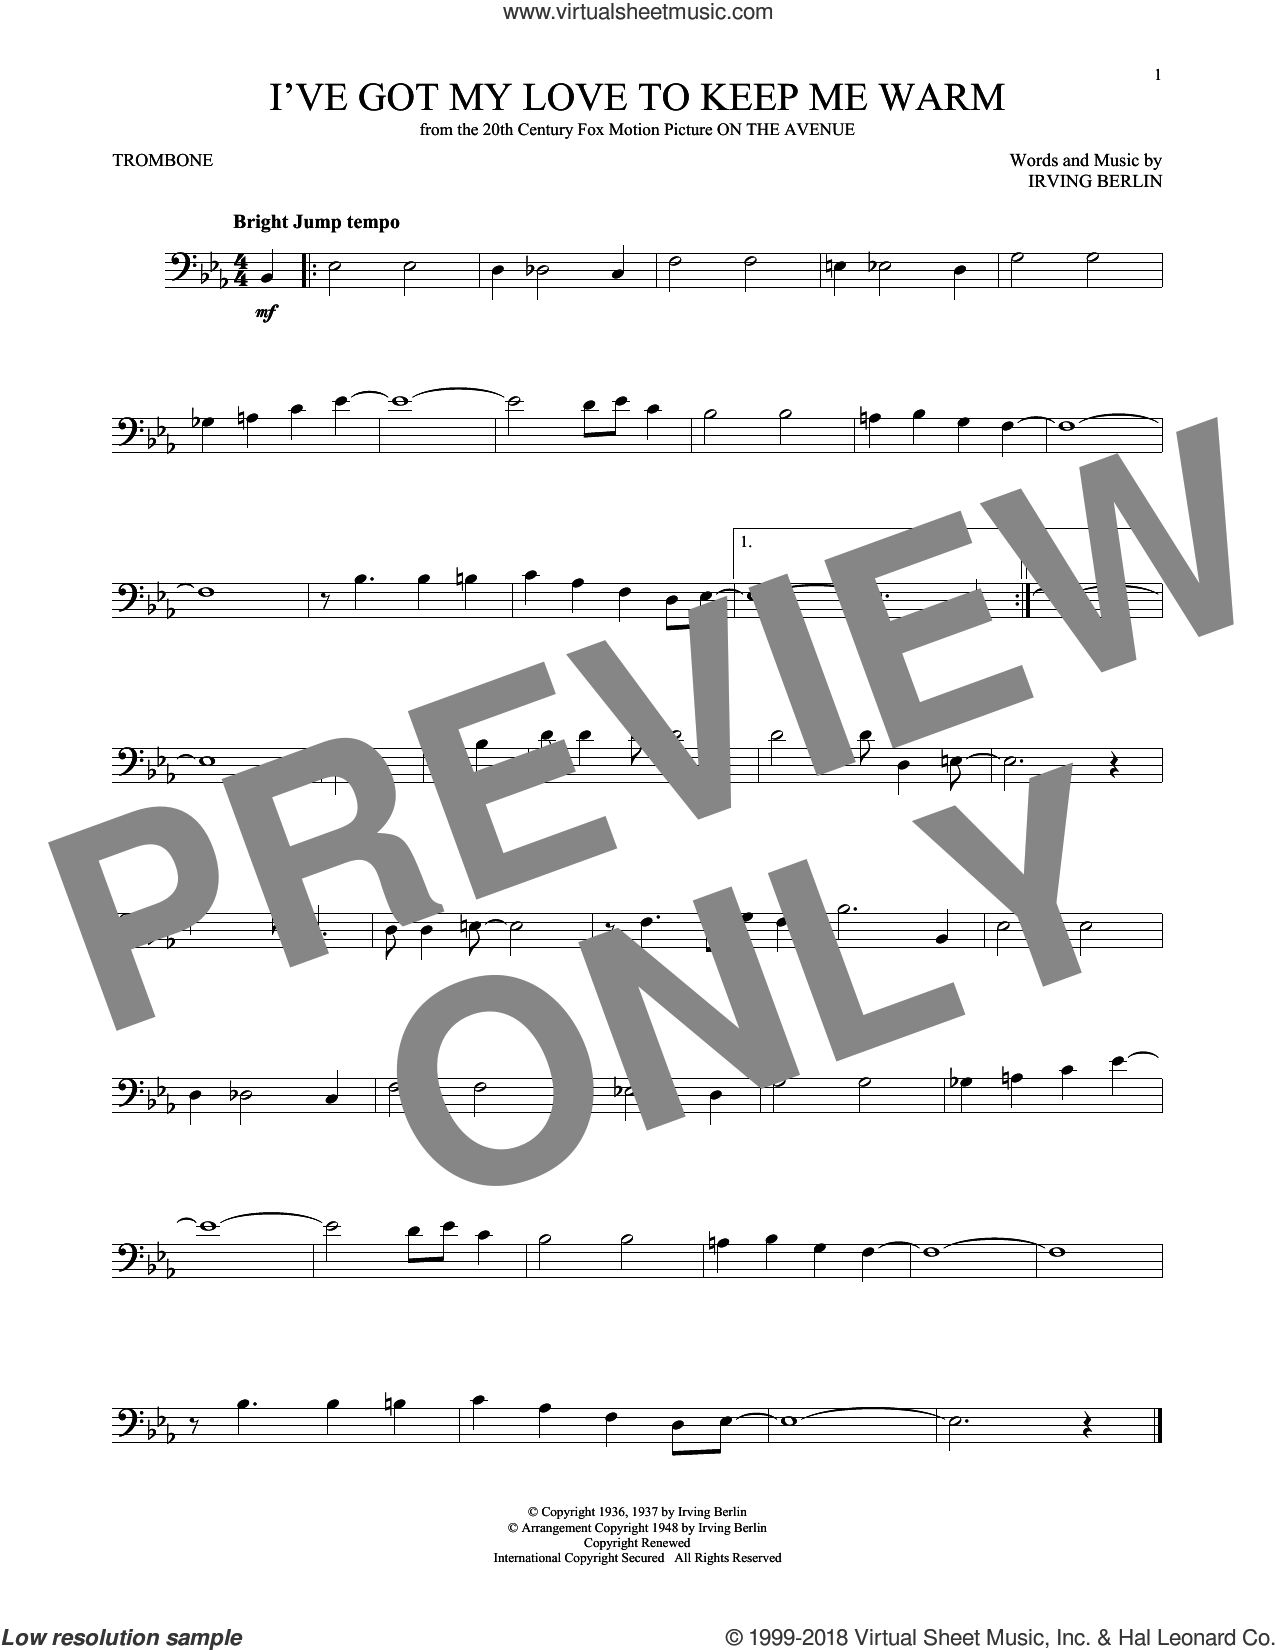 I've Got My Love To Keep Me Warm sheet music for trombone solo by Irving Berlin and Benny Goodman, intermediate skill level